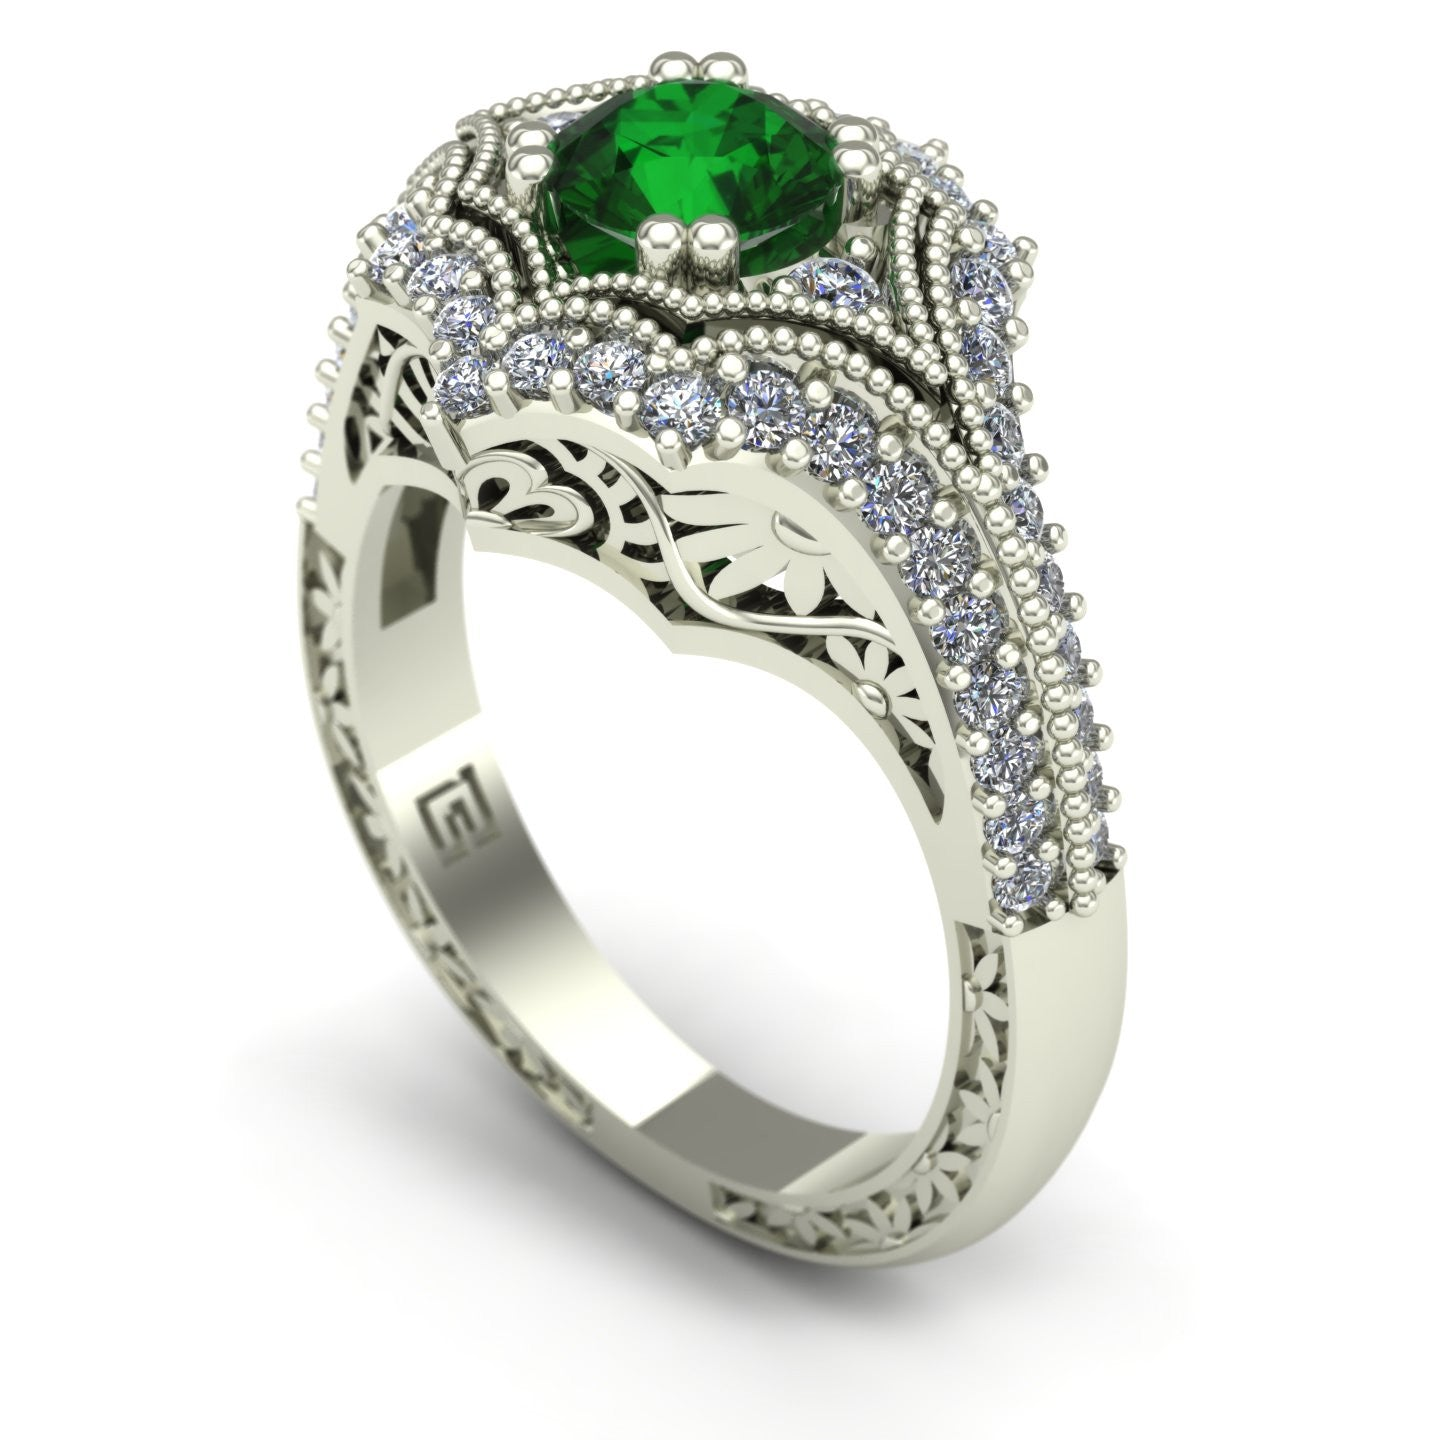 Emerald and diamond ring with floral carving in 14k white gold